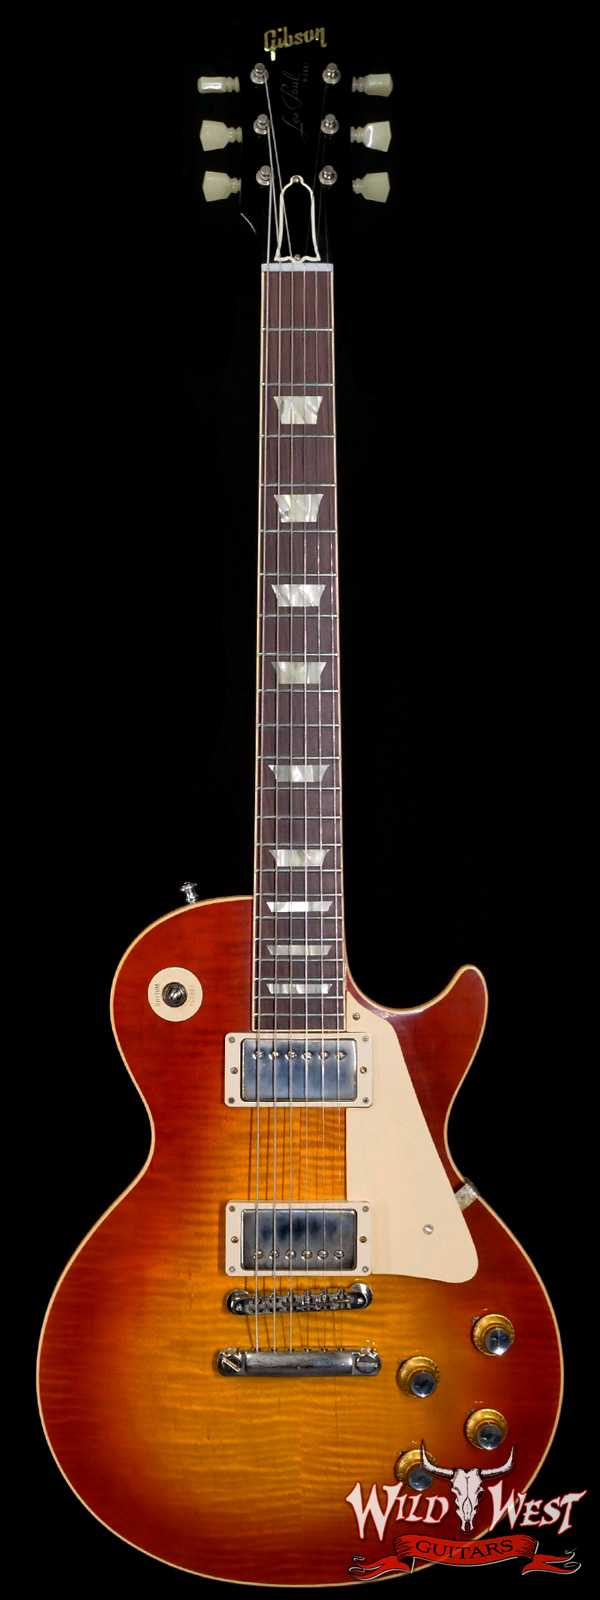 Gibson Custom Shop 60th Anniversary 1960 Les Paul Standard VOS V3 Wide Tomato Burst 9.00 LBS